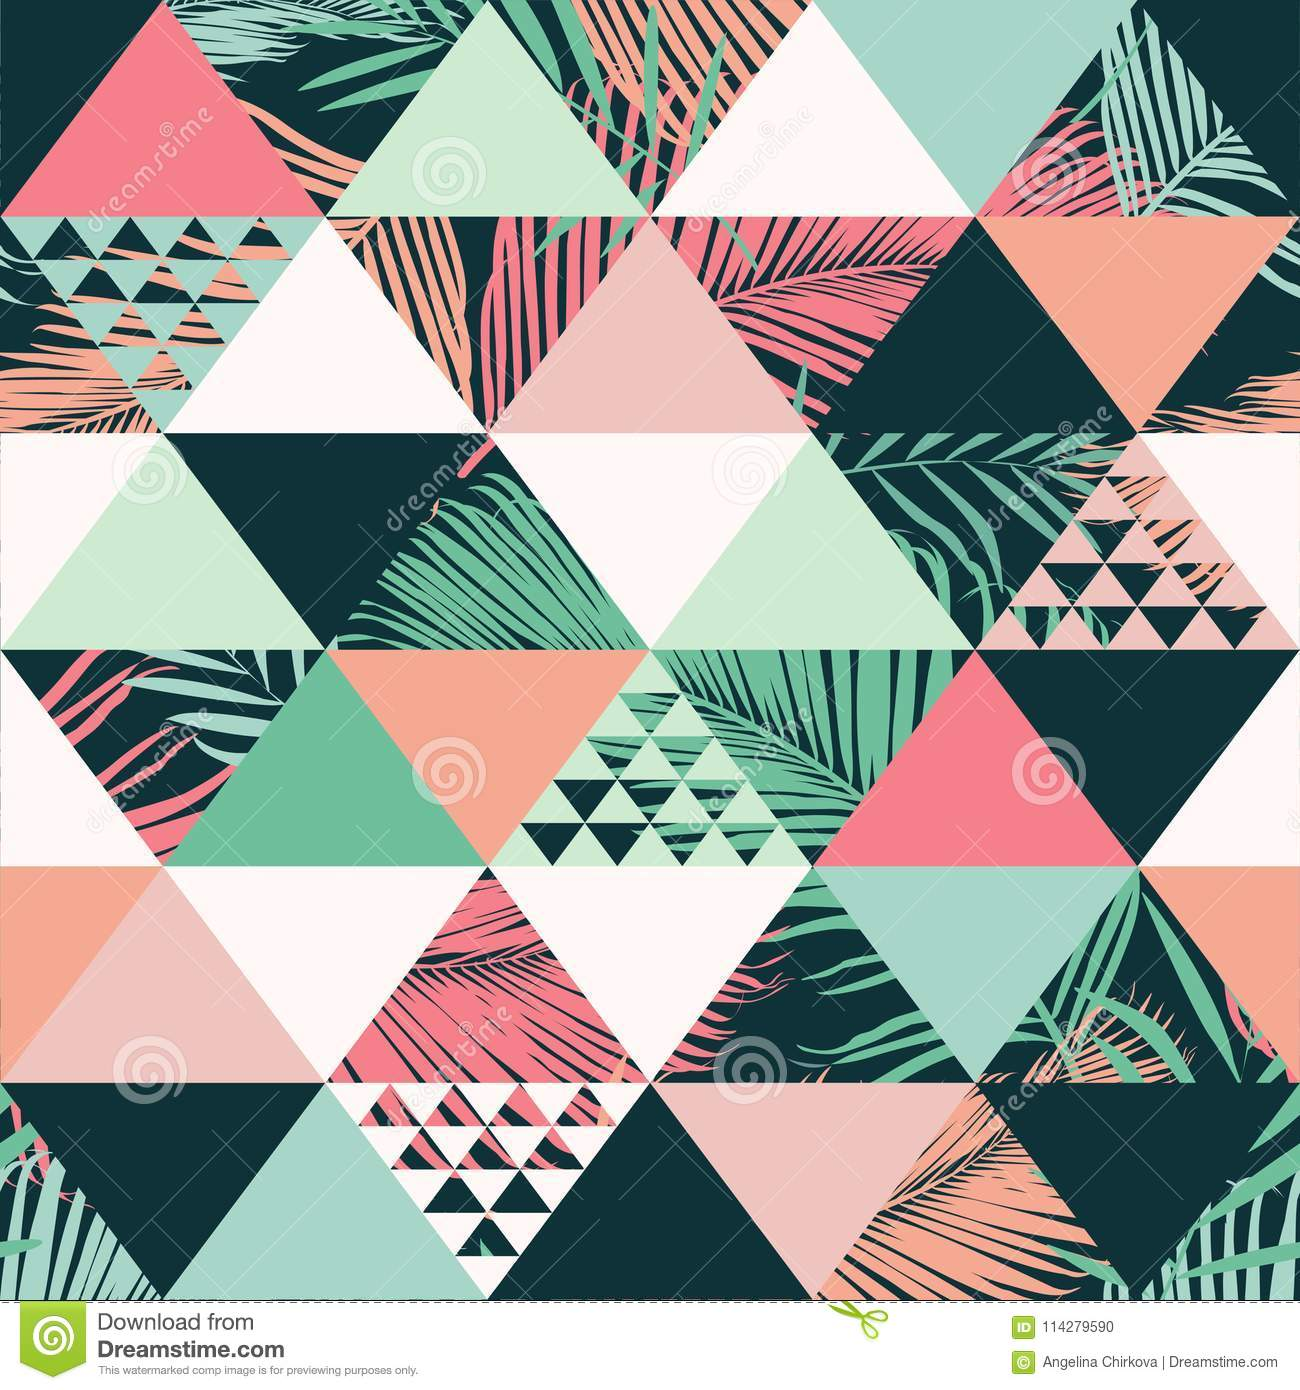 Abstract Trendy Seamless Pattern Illustrated Floral Vector